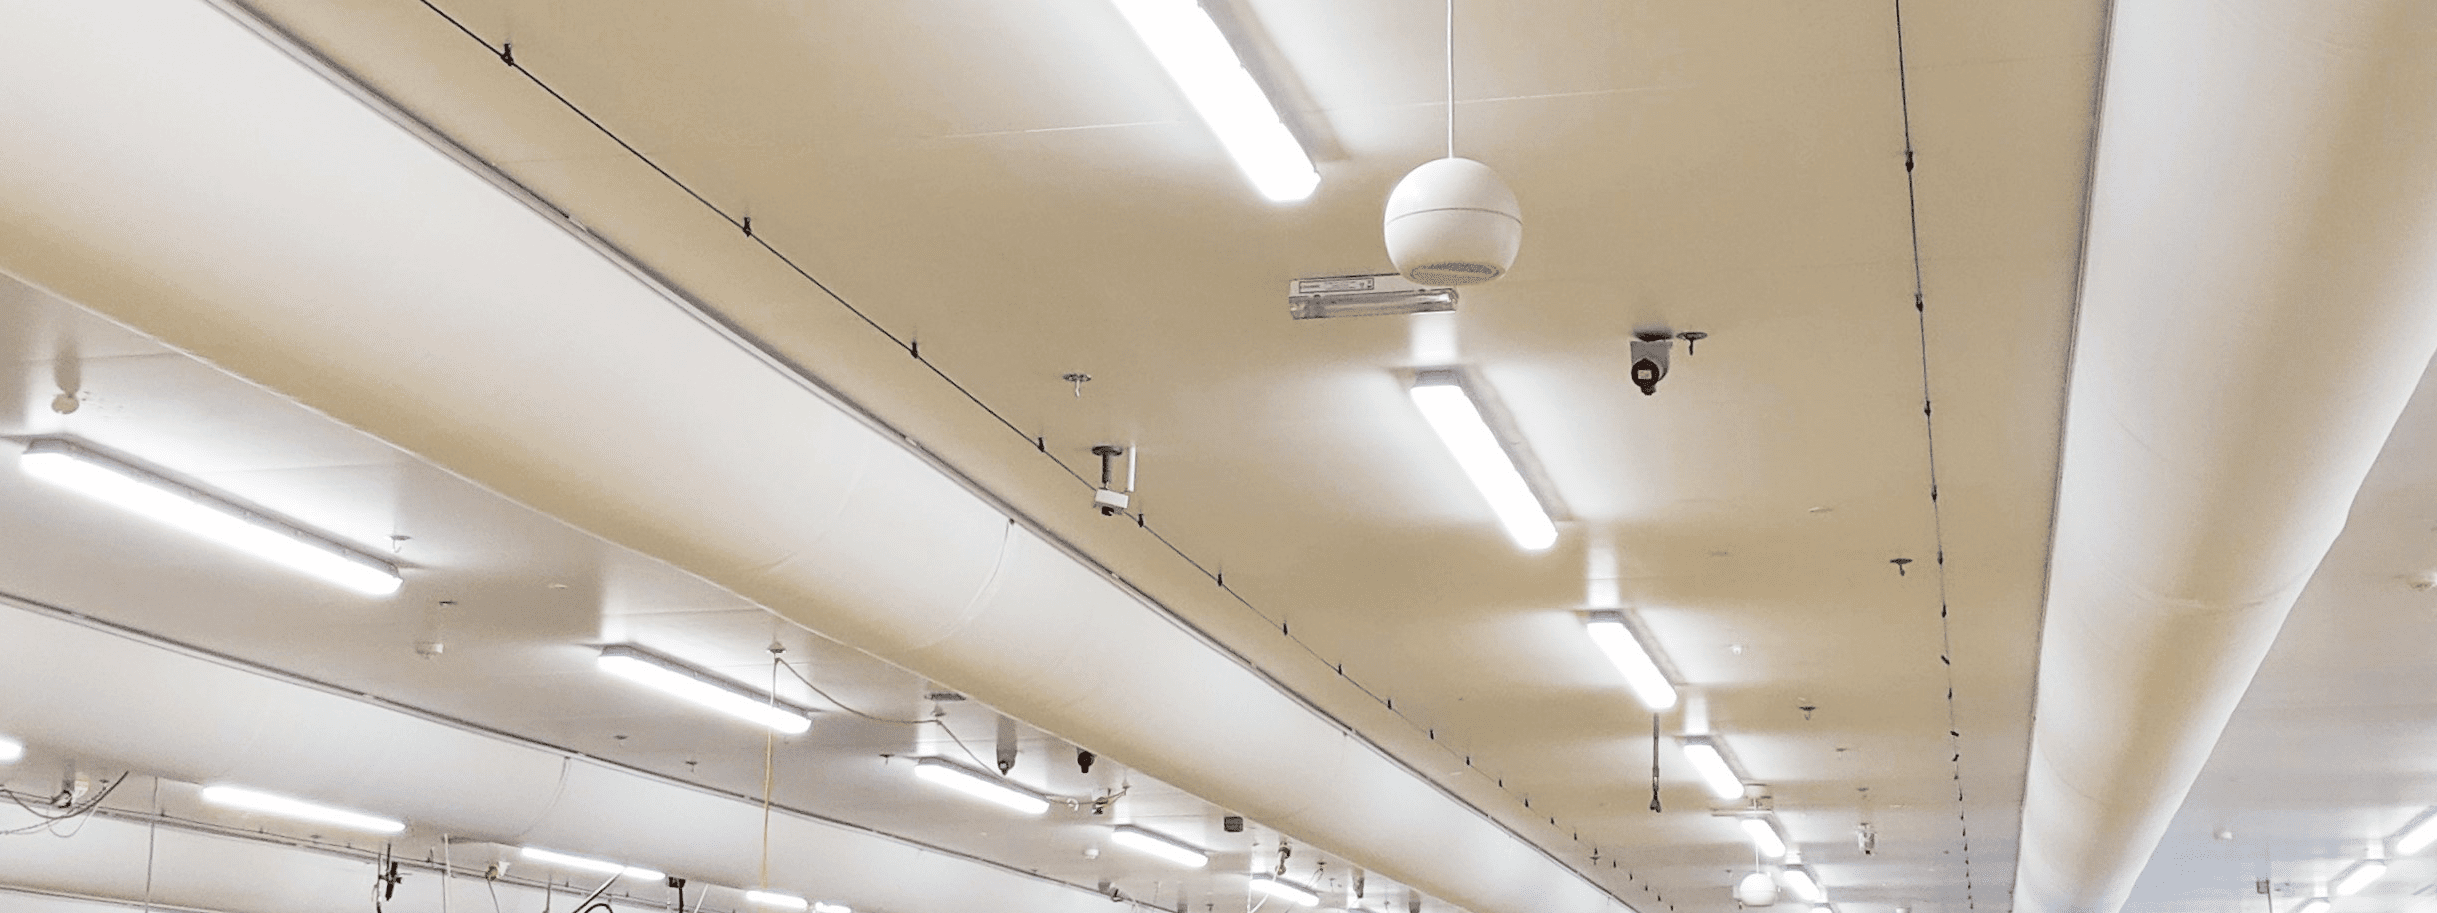 Hygienic fabric ducts in a food factory